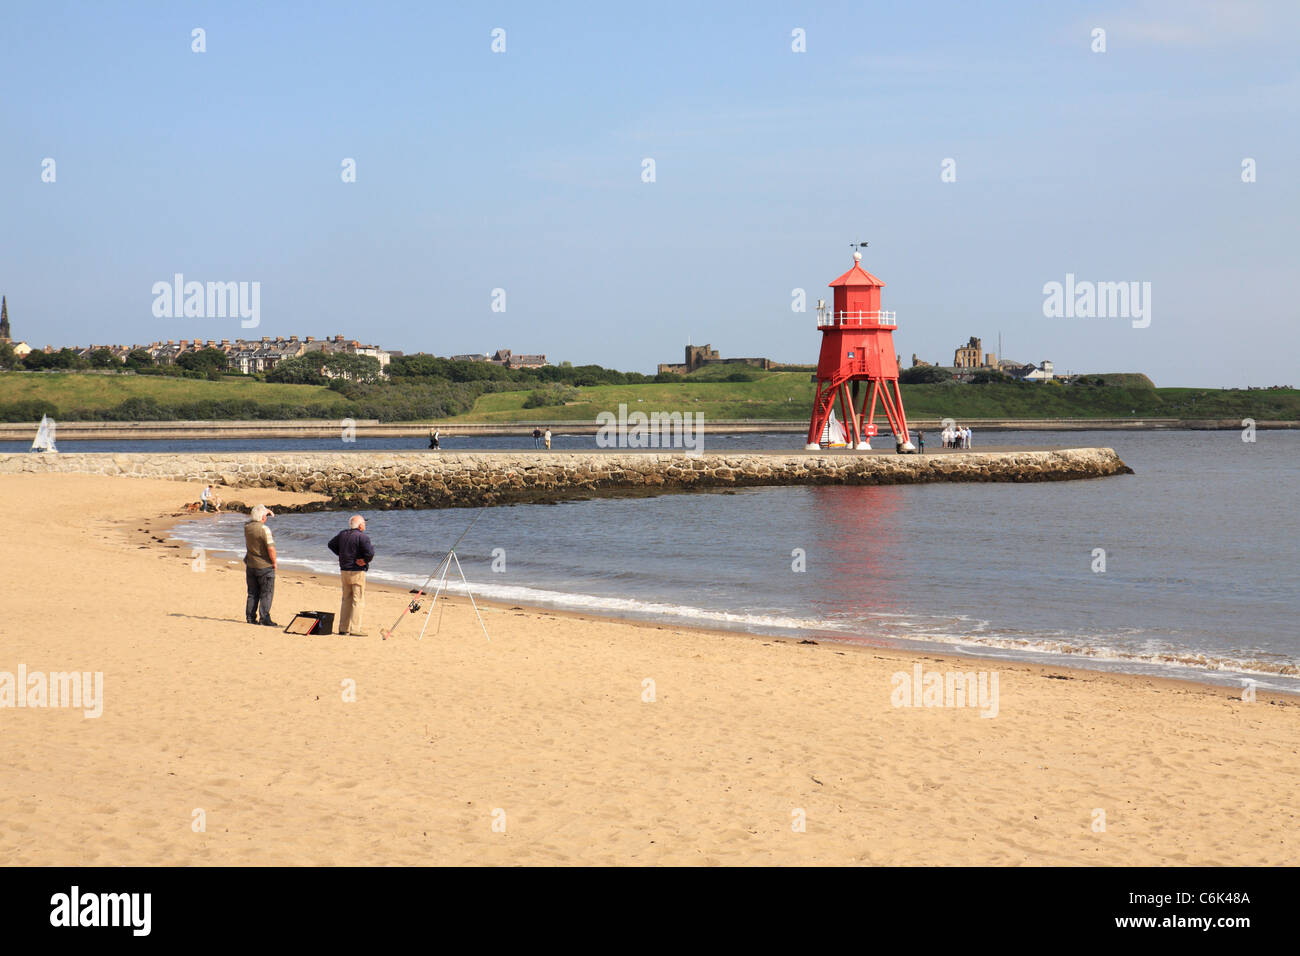 Two men fishing from Herd Sand or Littlehaven beach, Groyne lighthouse in background at South Shields, North East - Stock Image